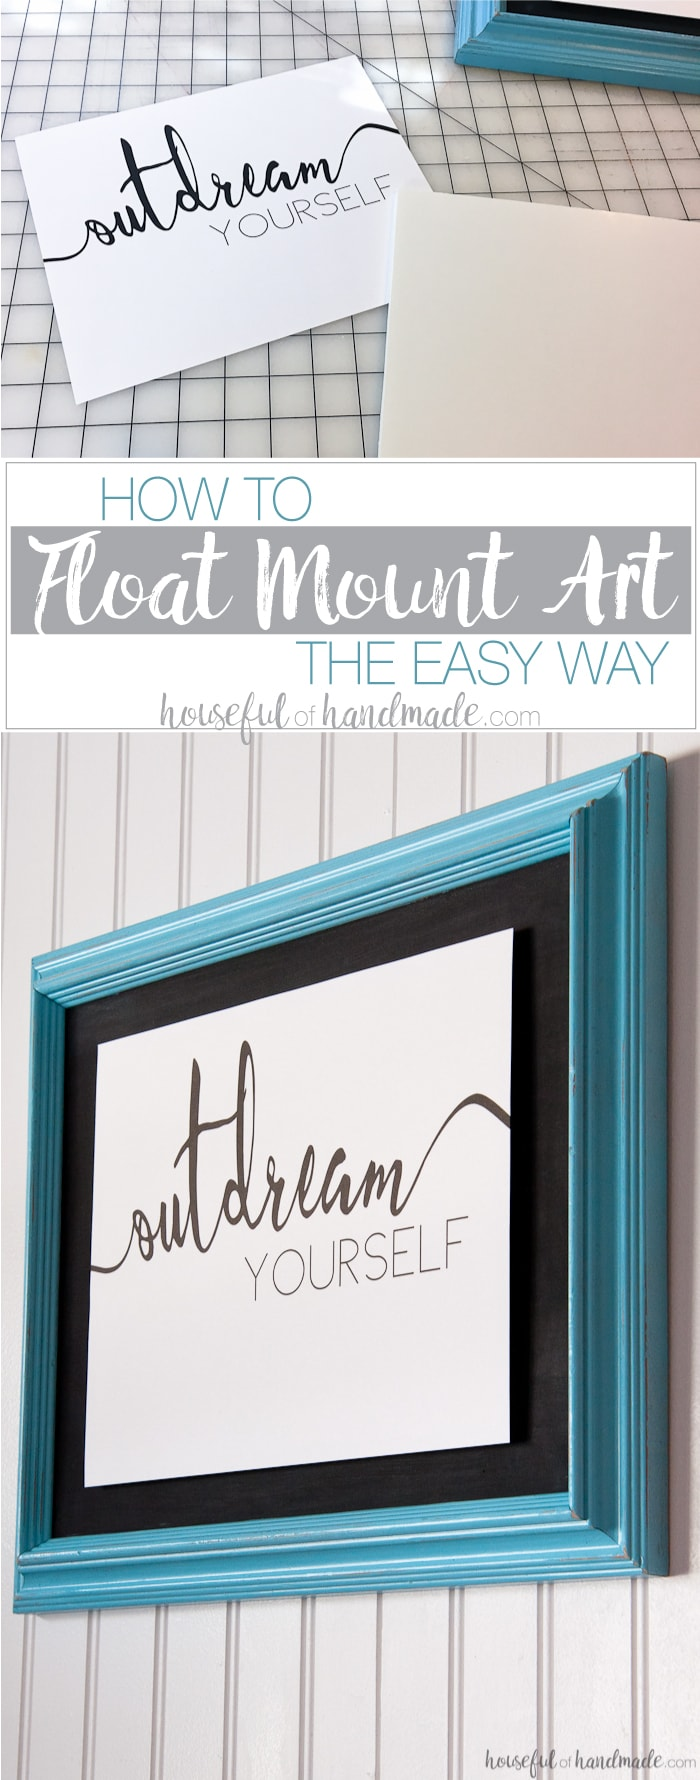 Add dimension to your gallery wall by learning how to float mount art the easy way. No specialized supplies needed, instead for a couple dollars you can have the high end float mount look in minutes. Housefulofhandmade.com | Mounting Art | Inexpensive Art Ideas | Gallery Wall Ideas | DIY Float Mount | Floating Art | Wall Sayings | $100 Room Challenge